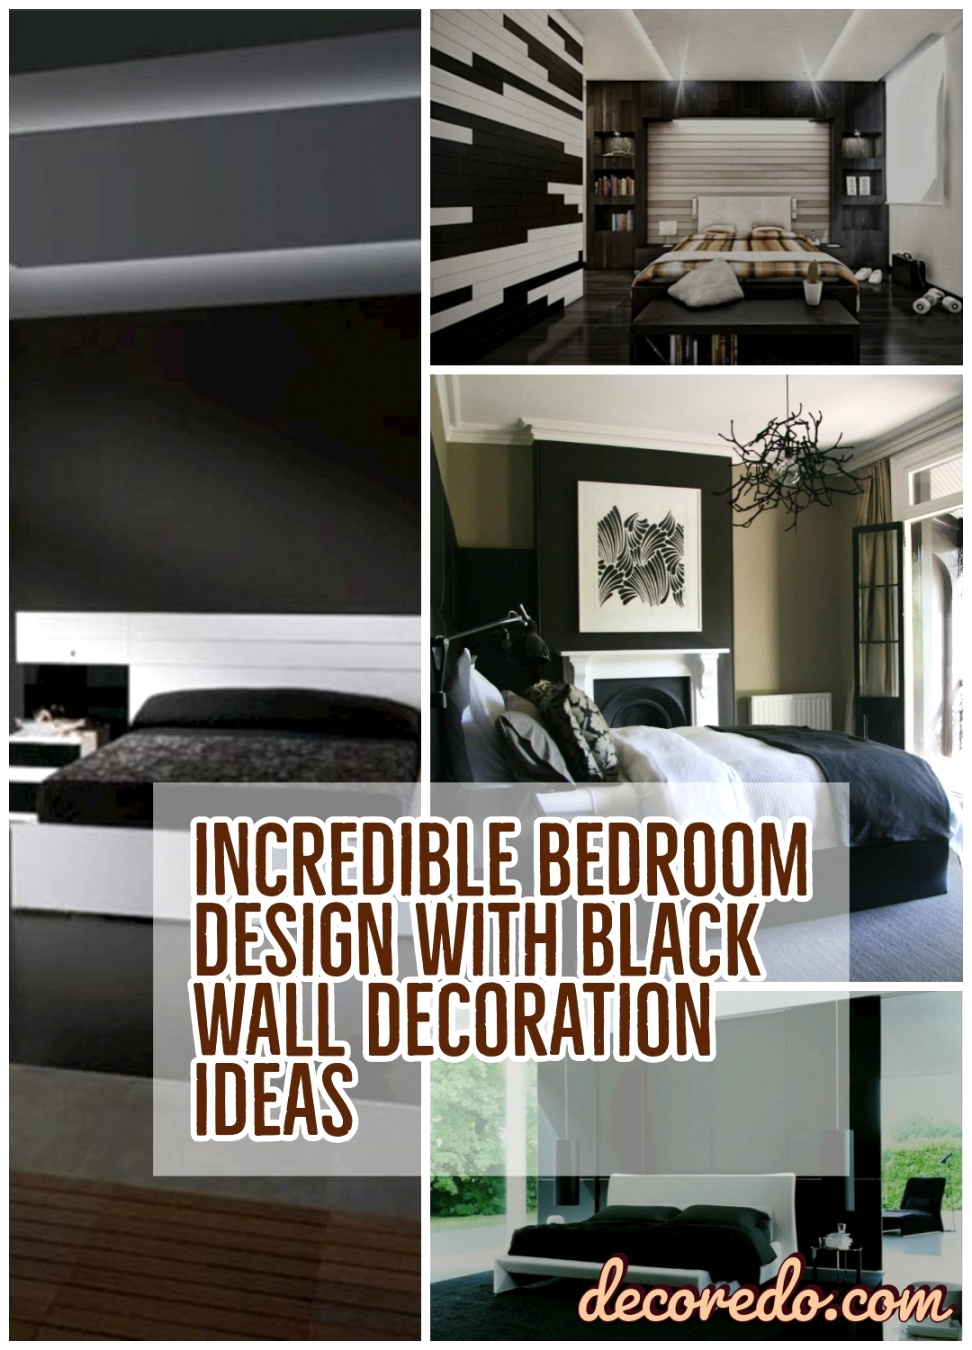 Incredible Bedroom Design With Black Wall Decoration Ideas